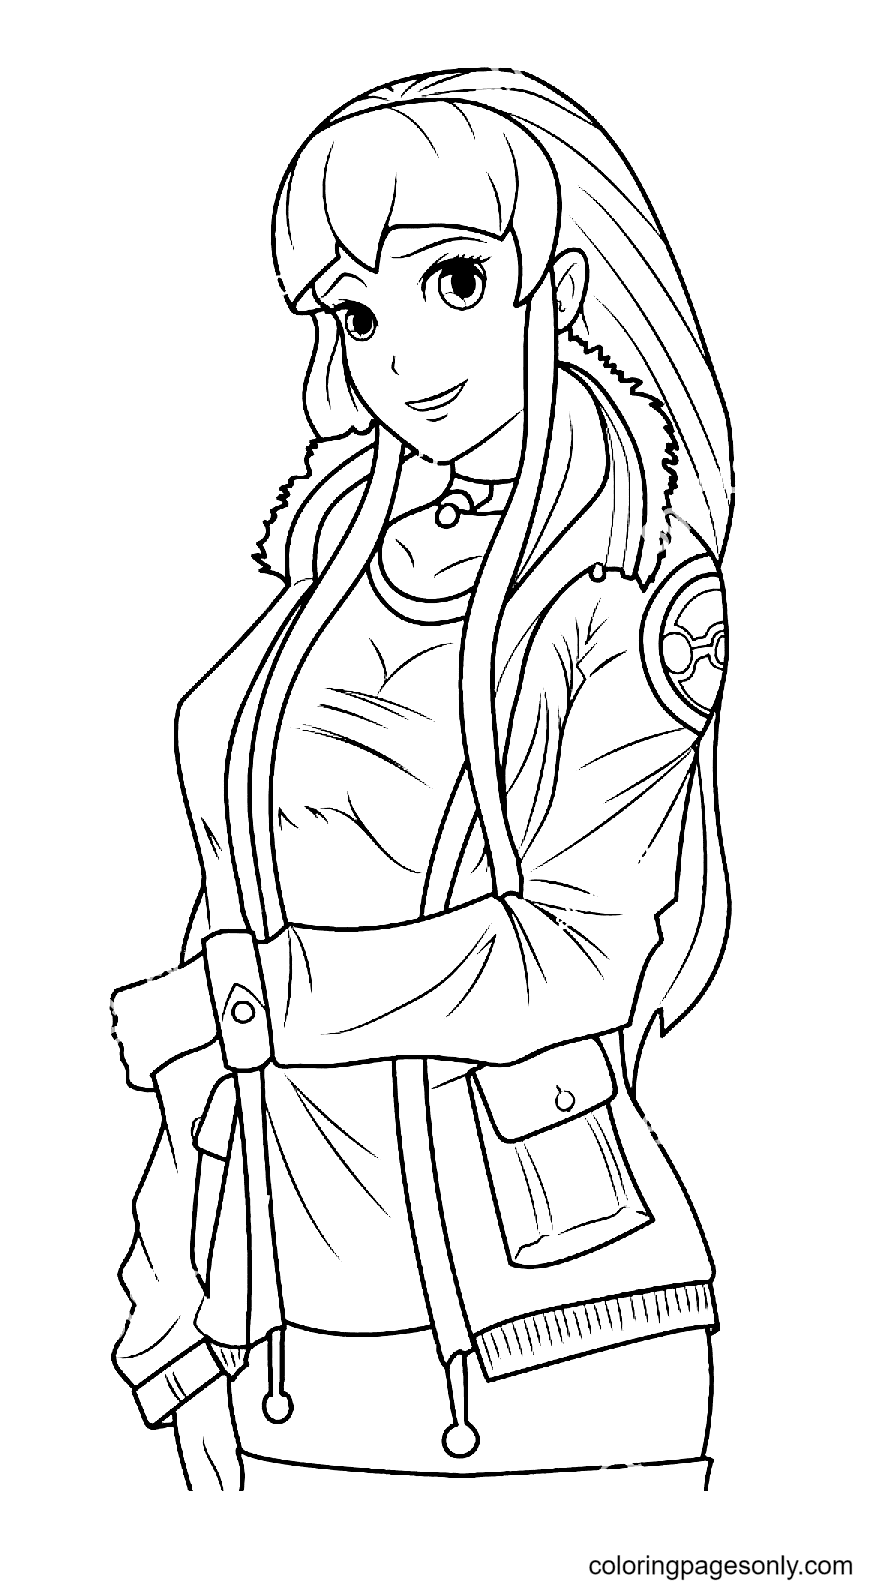 Adorable Manga Girl Posing in a Jacket Coloring Page